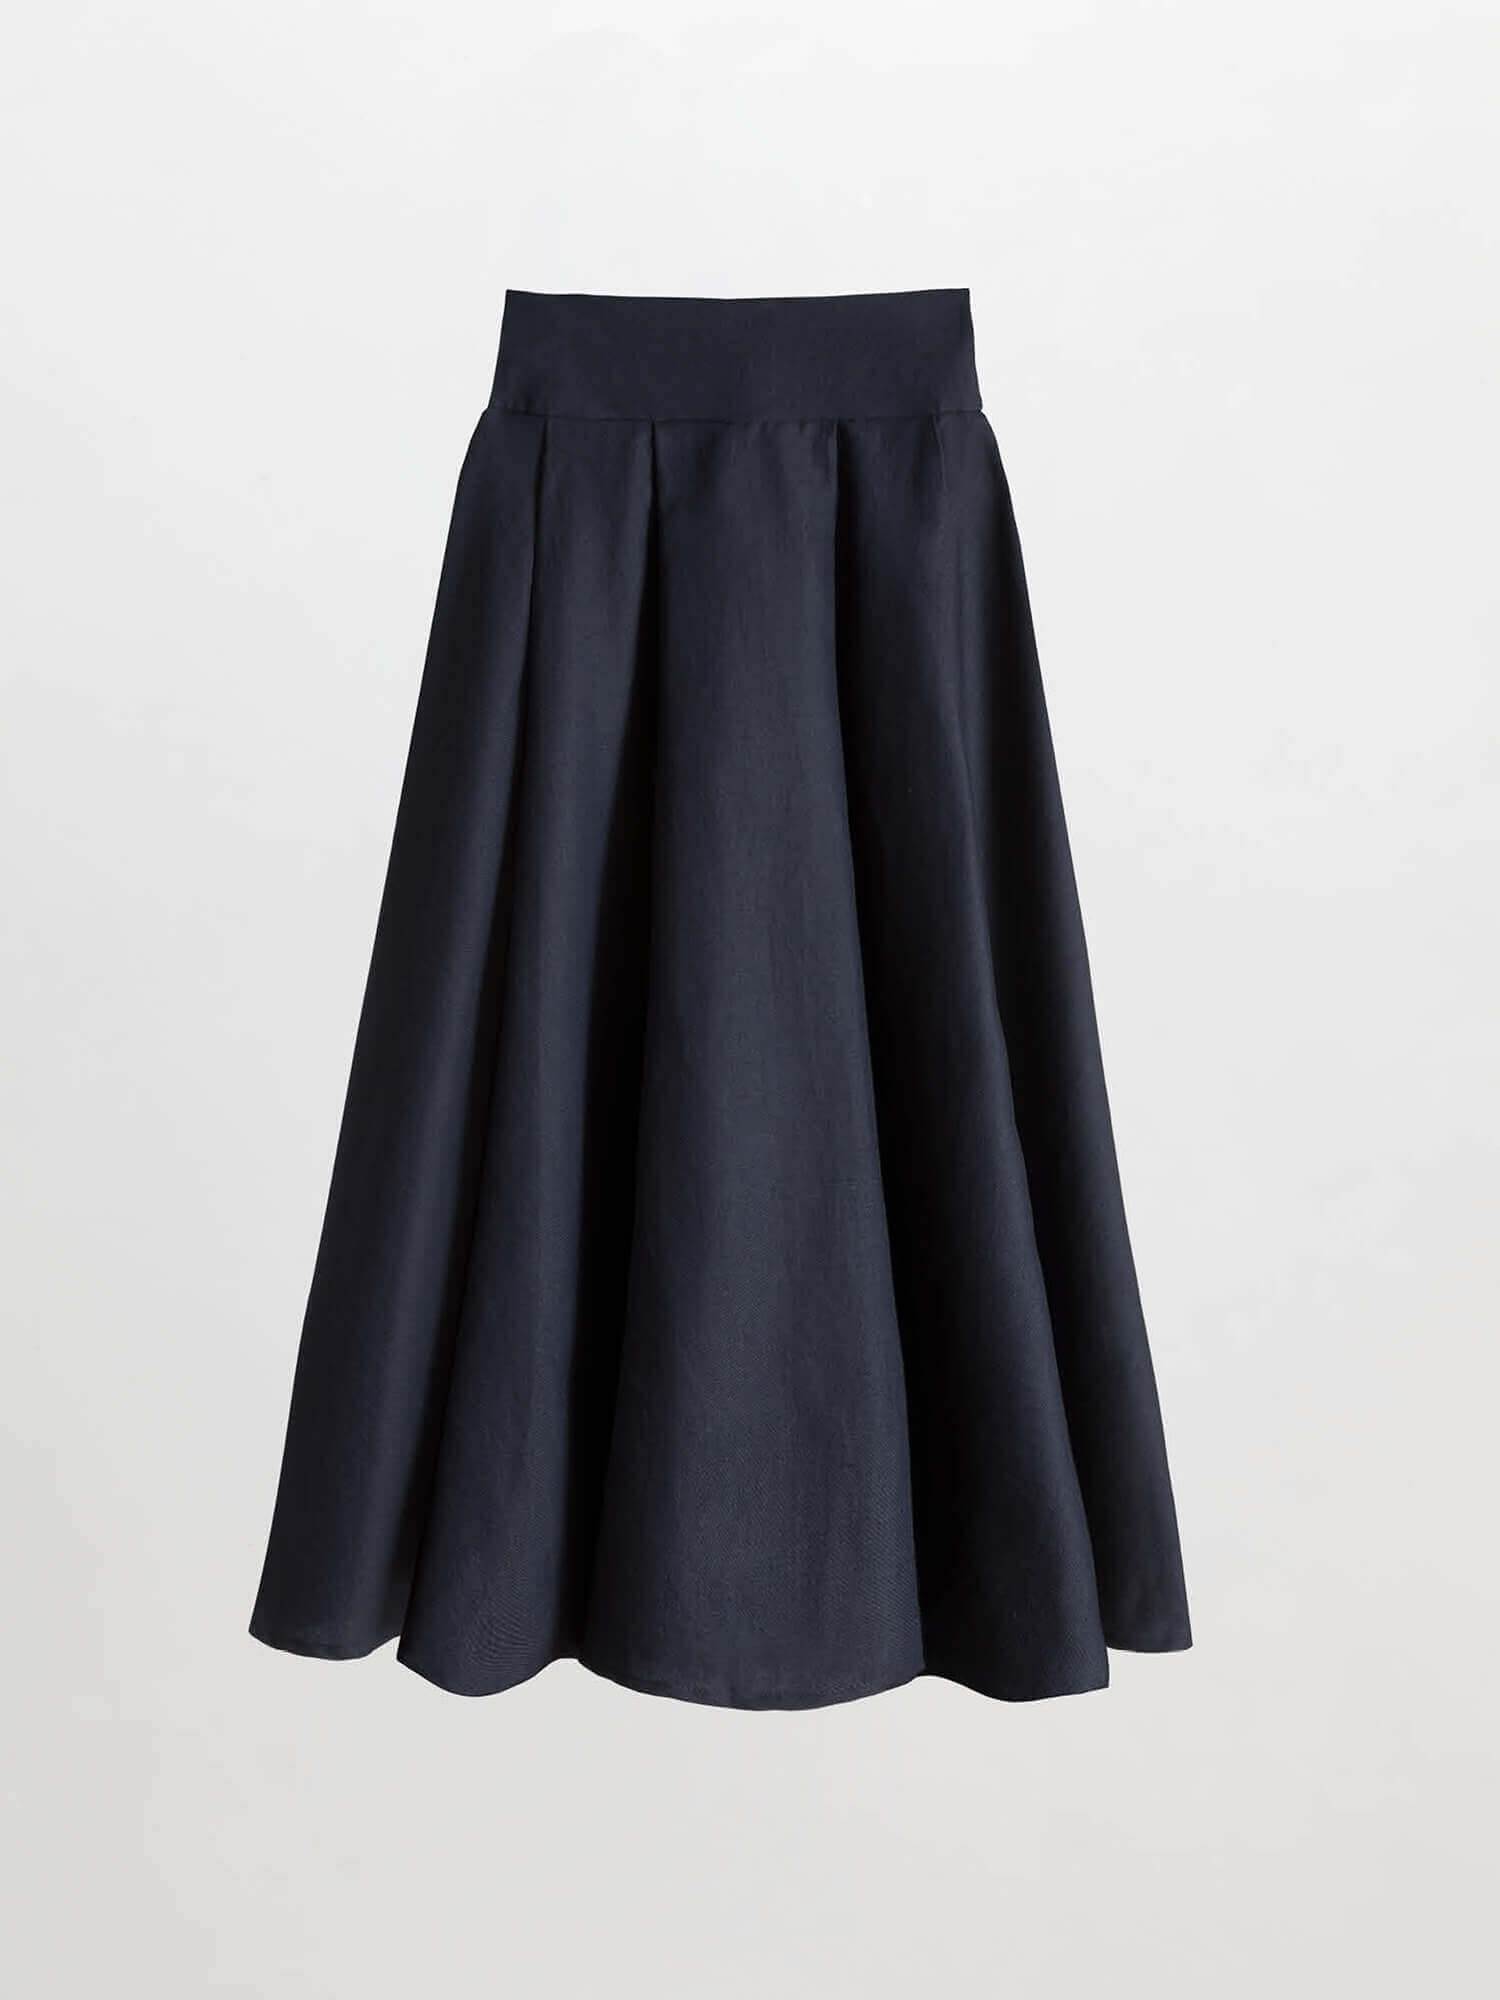 Mood skirt, blue